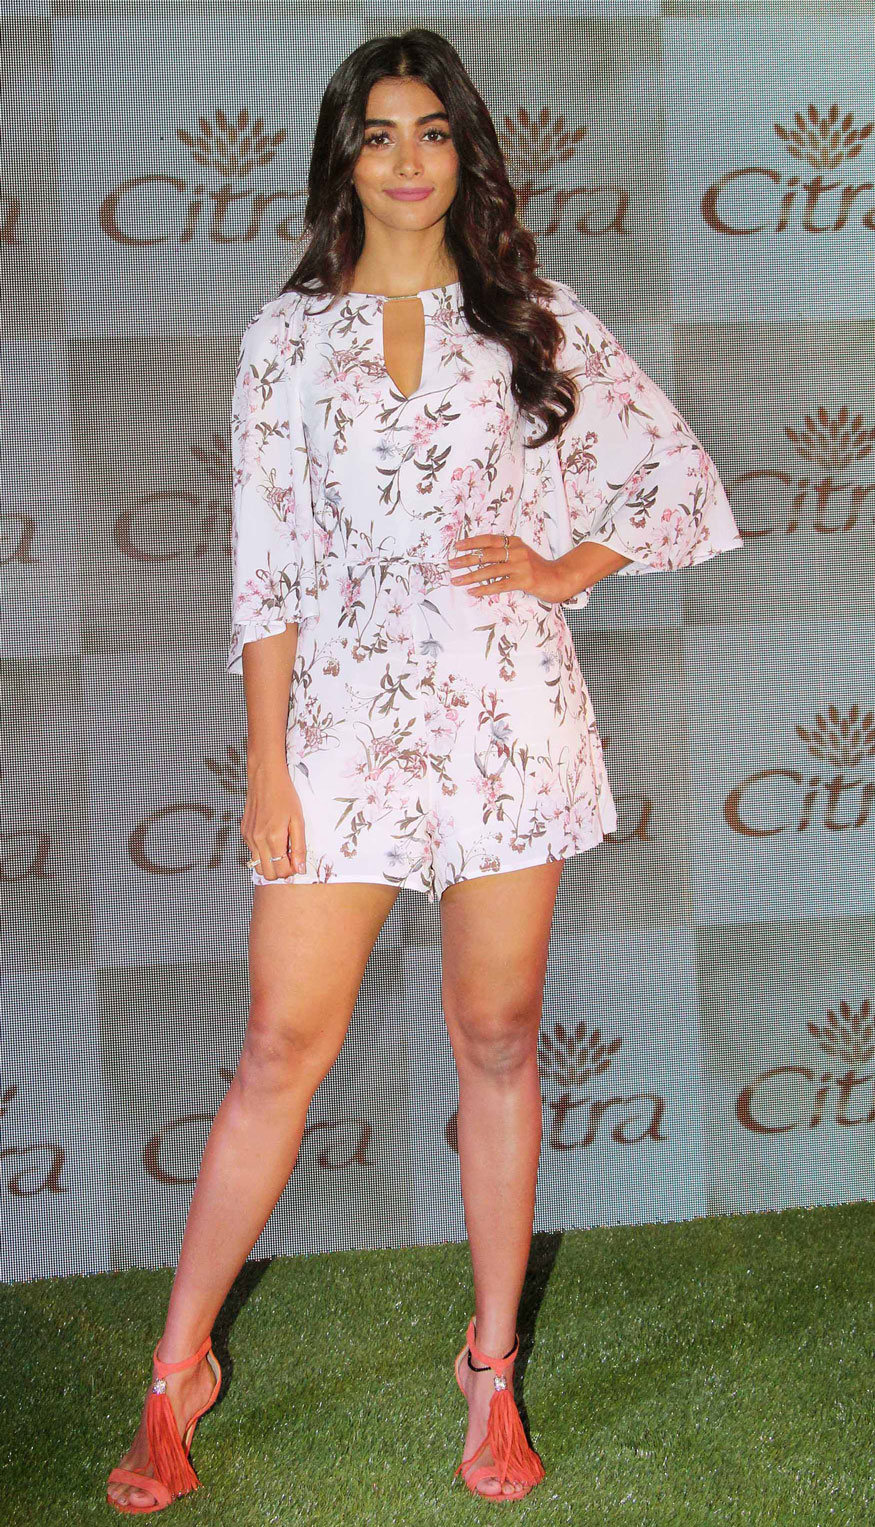 Pooja Hegde Launching Citra's New Products at Taj Lands End Hotel